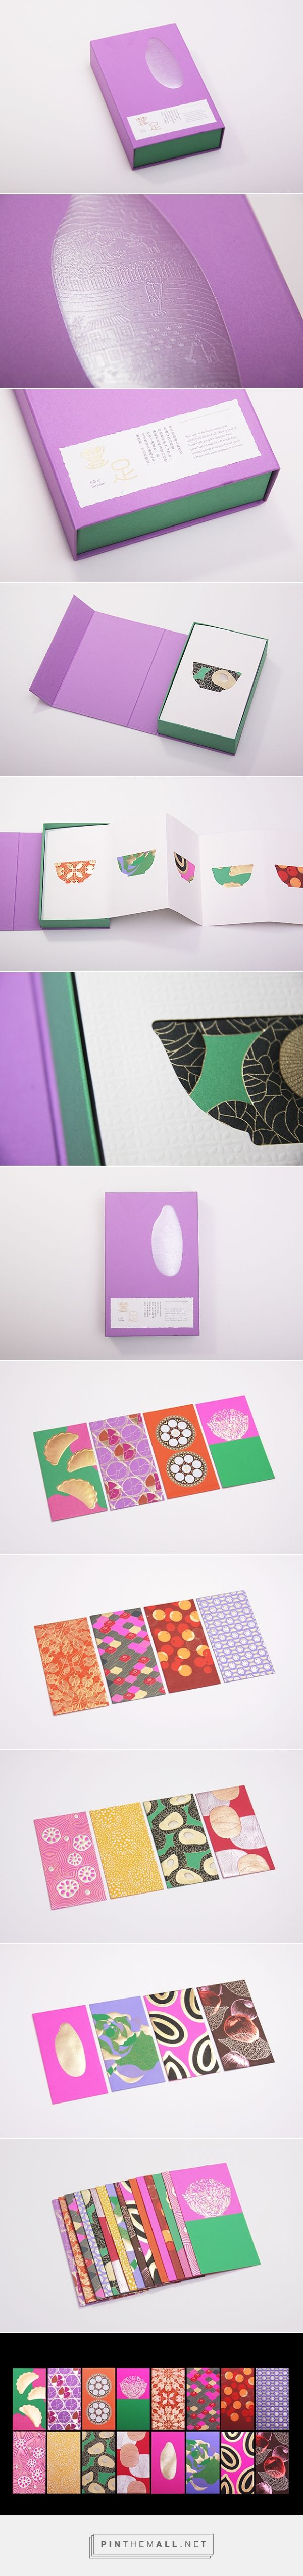 Full of Fortune Red Packets on Behance - created via https://pinthemall.net